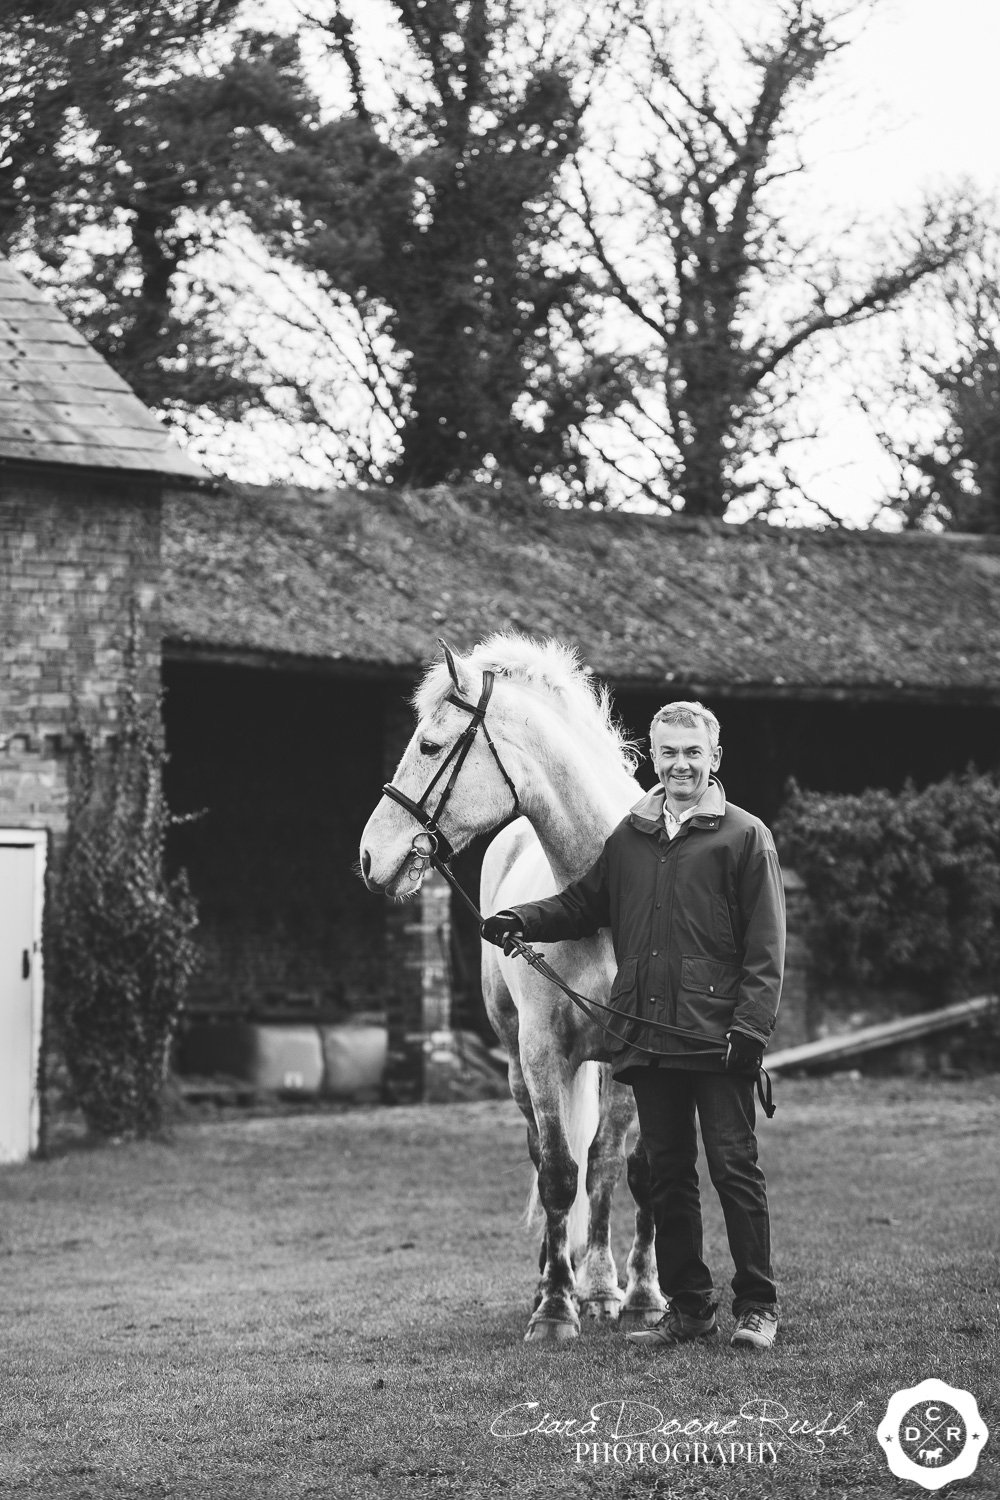 A man holding his horse in a stable yard